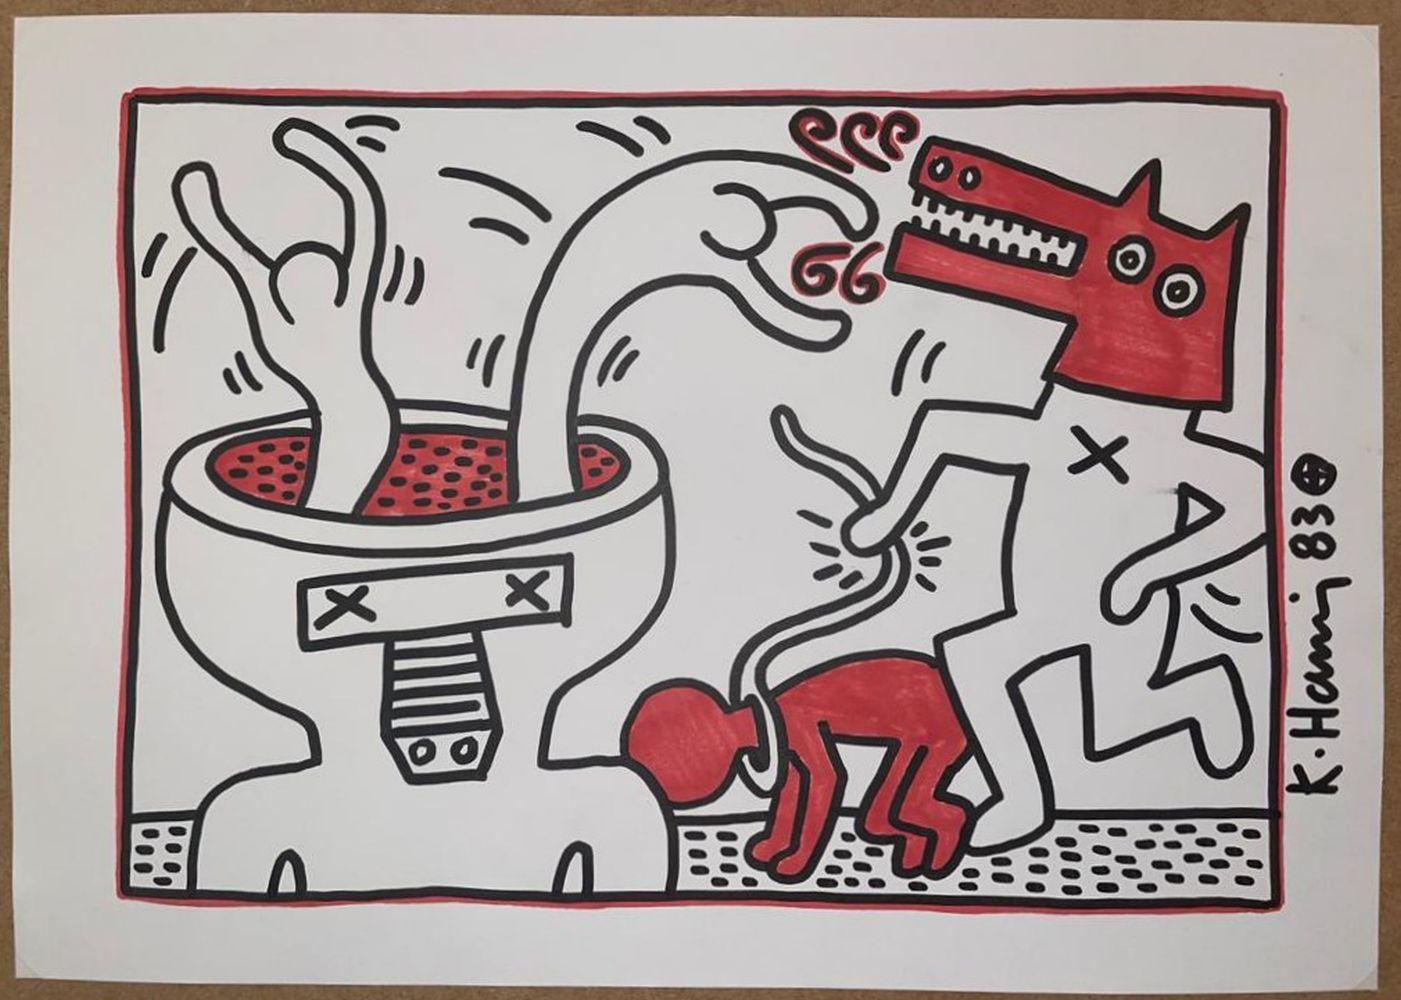 Keith Haring - Untitled, 1983